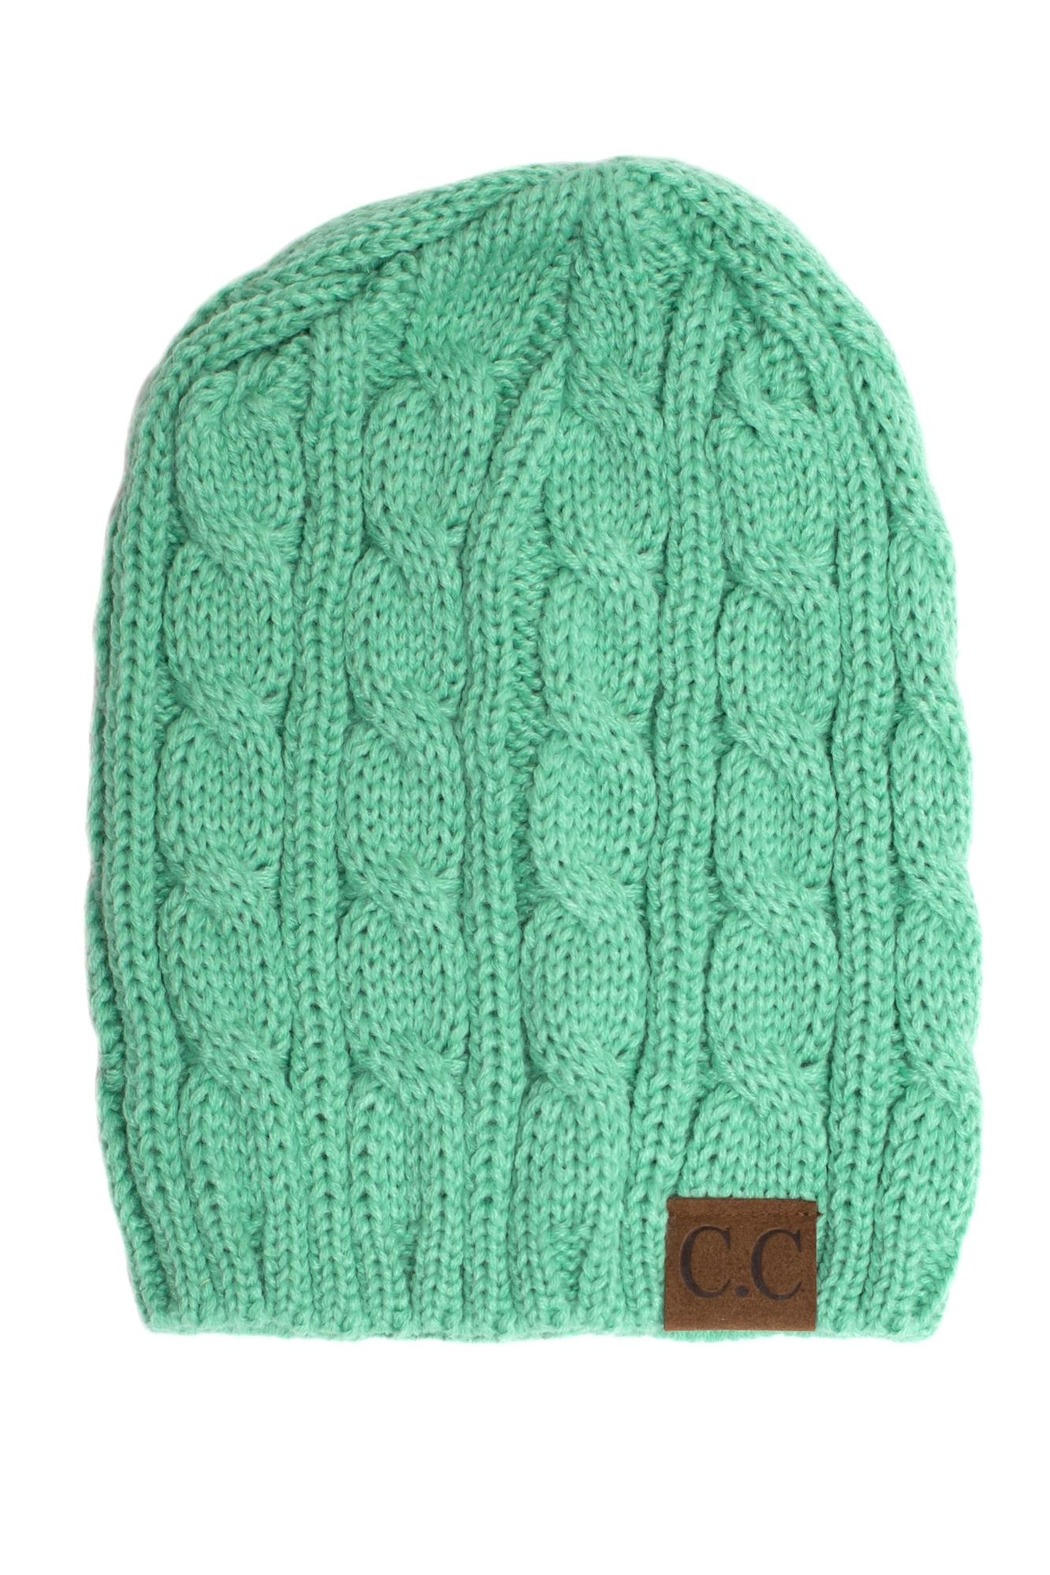 C.C. Cable Knit Beanie - Main Image